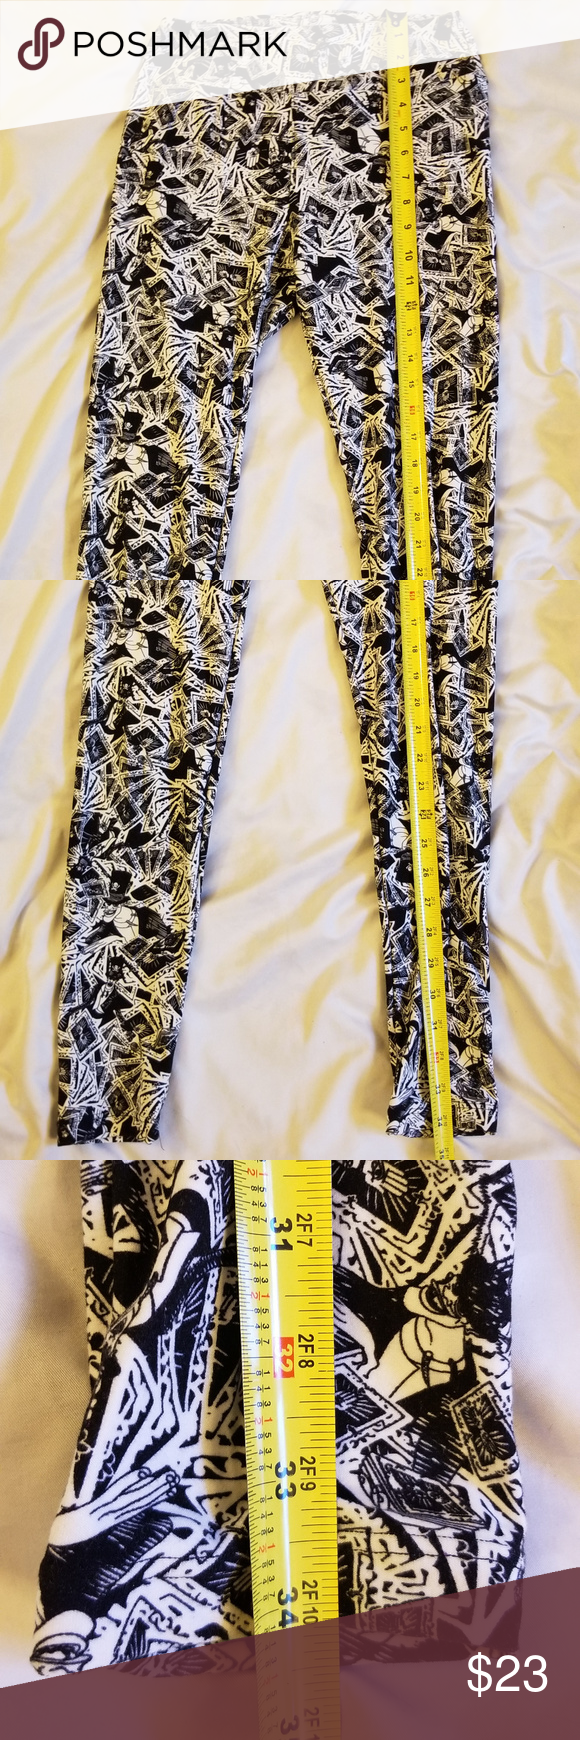 NWOT LulaRoe OS Leggings Giant Bomb DISNEY NWOT (New